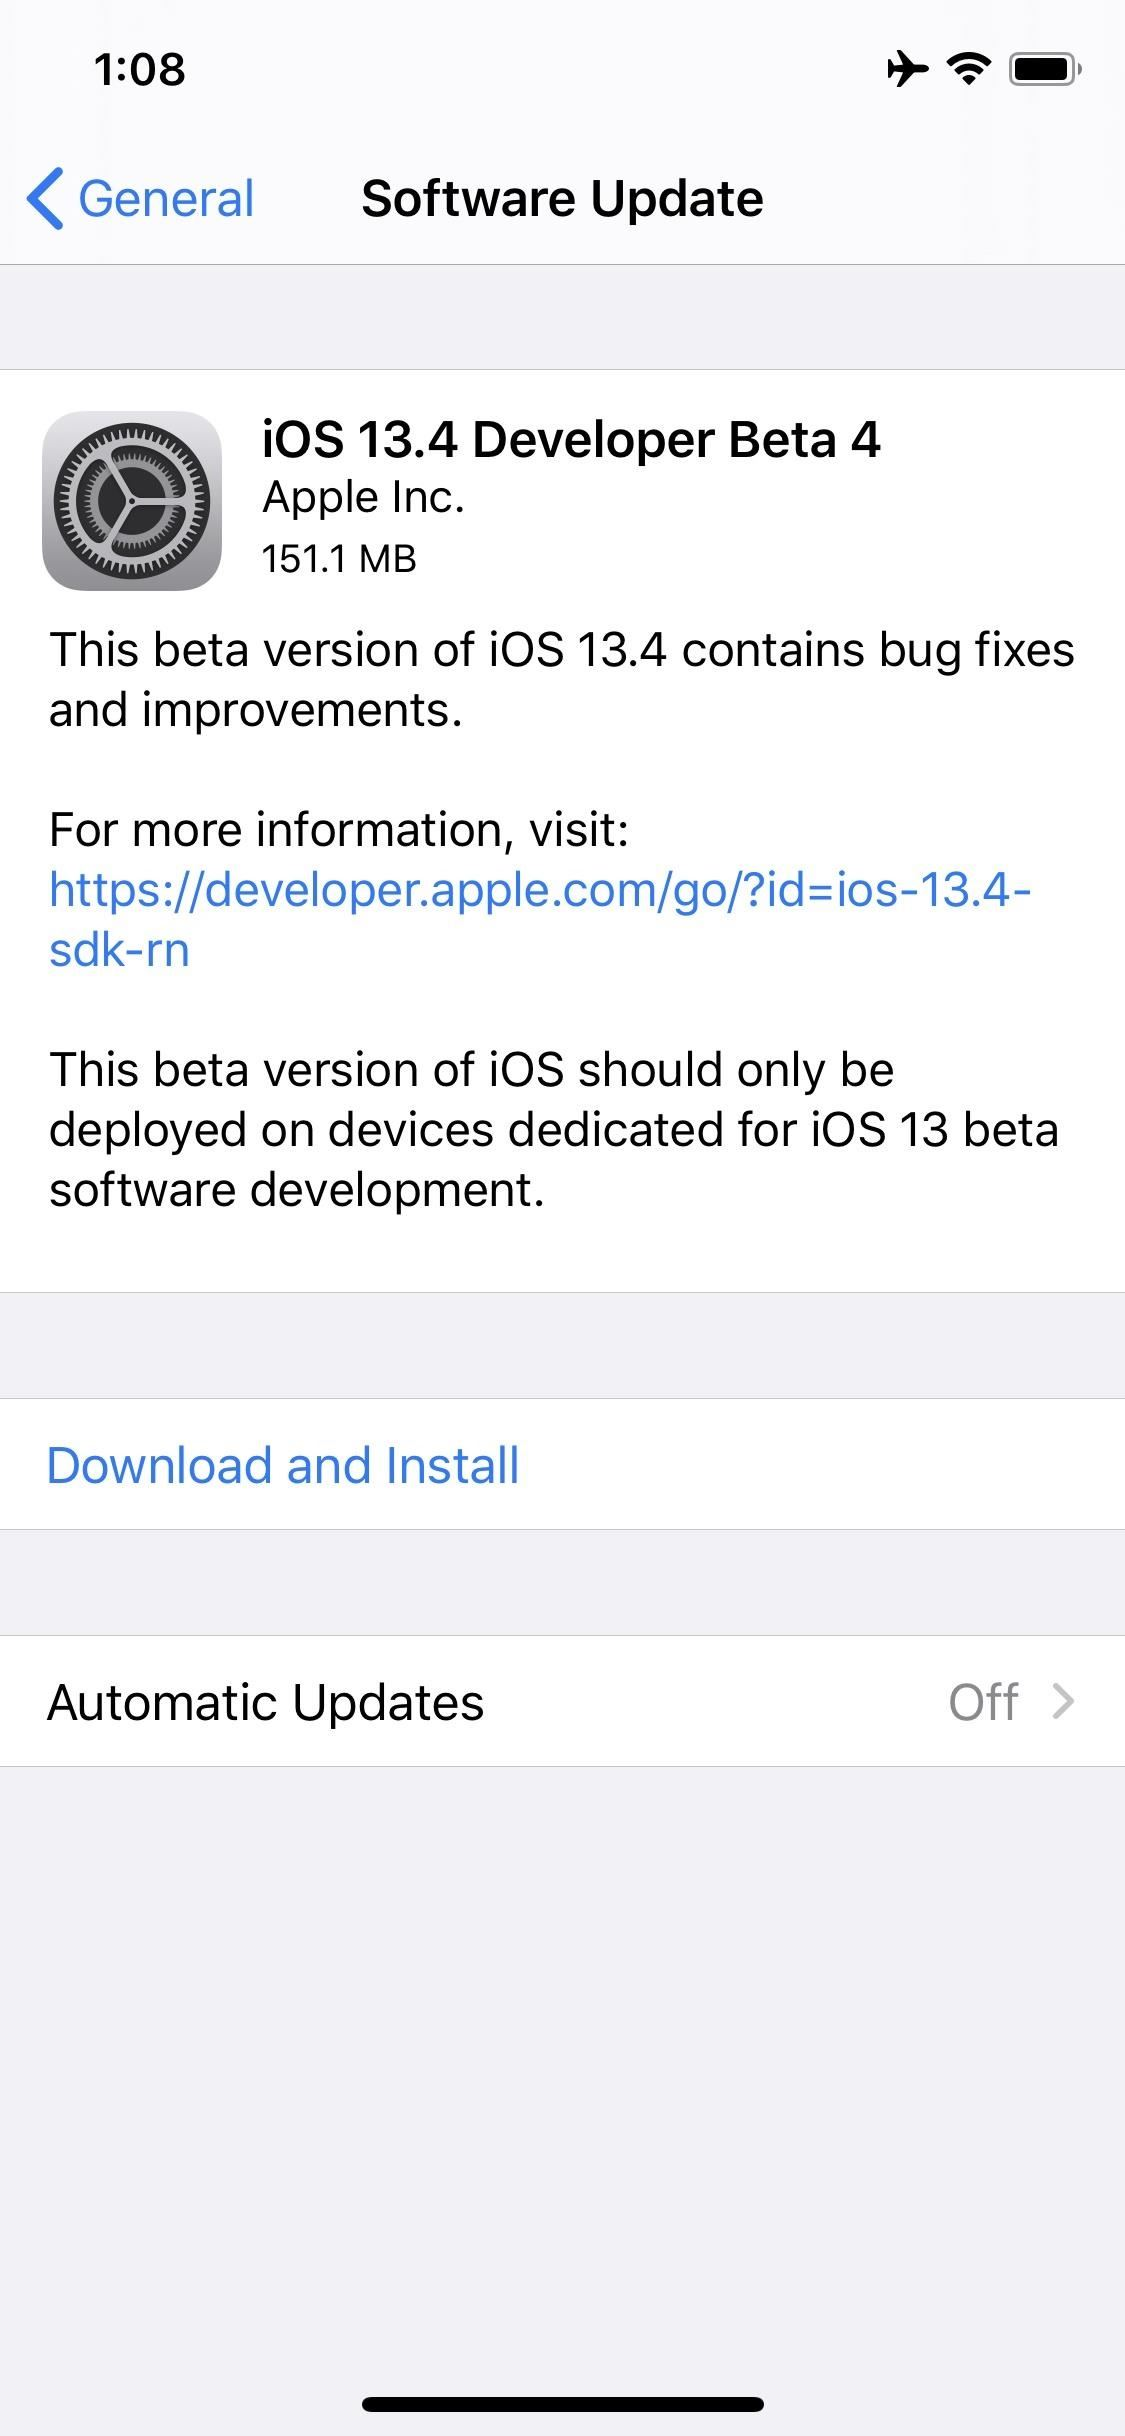 Apple Releases iOS 13.4 Developer Beta 4 for iPhone